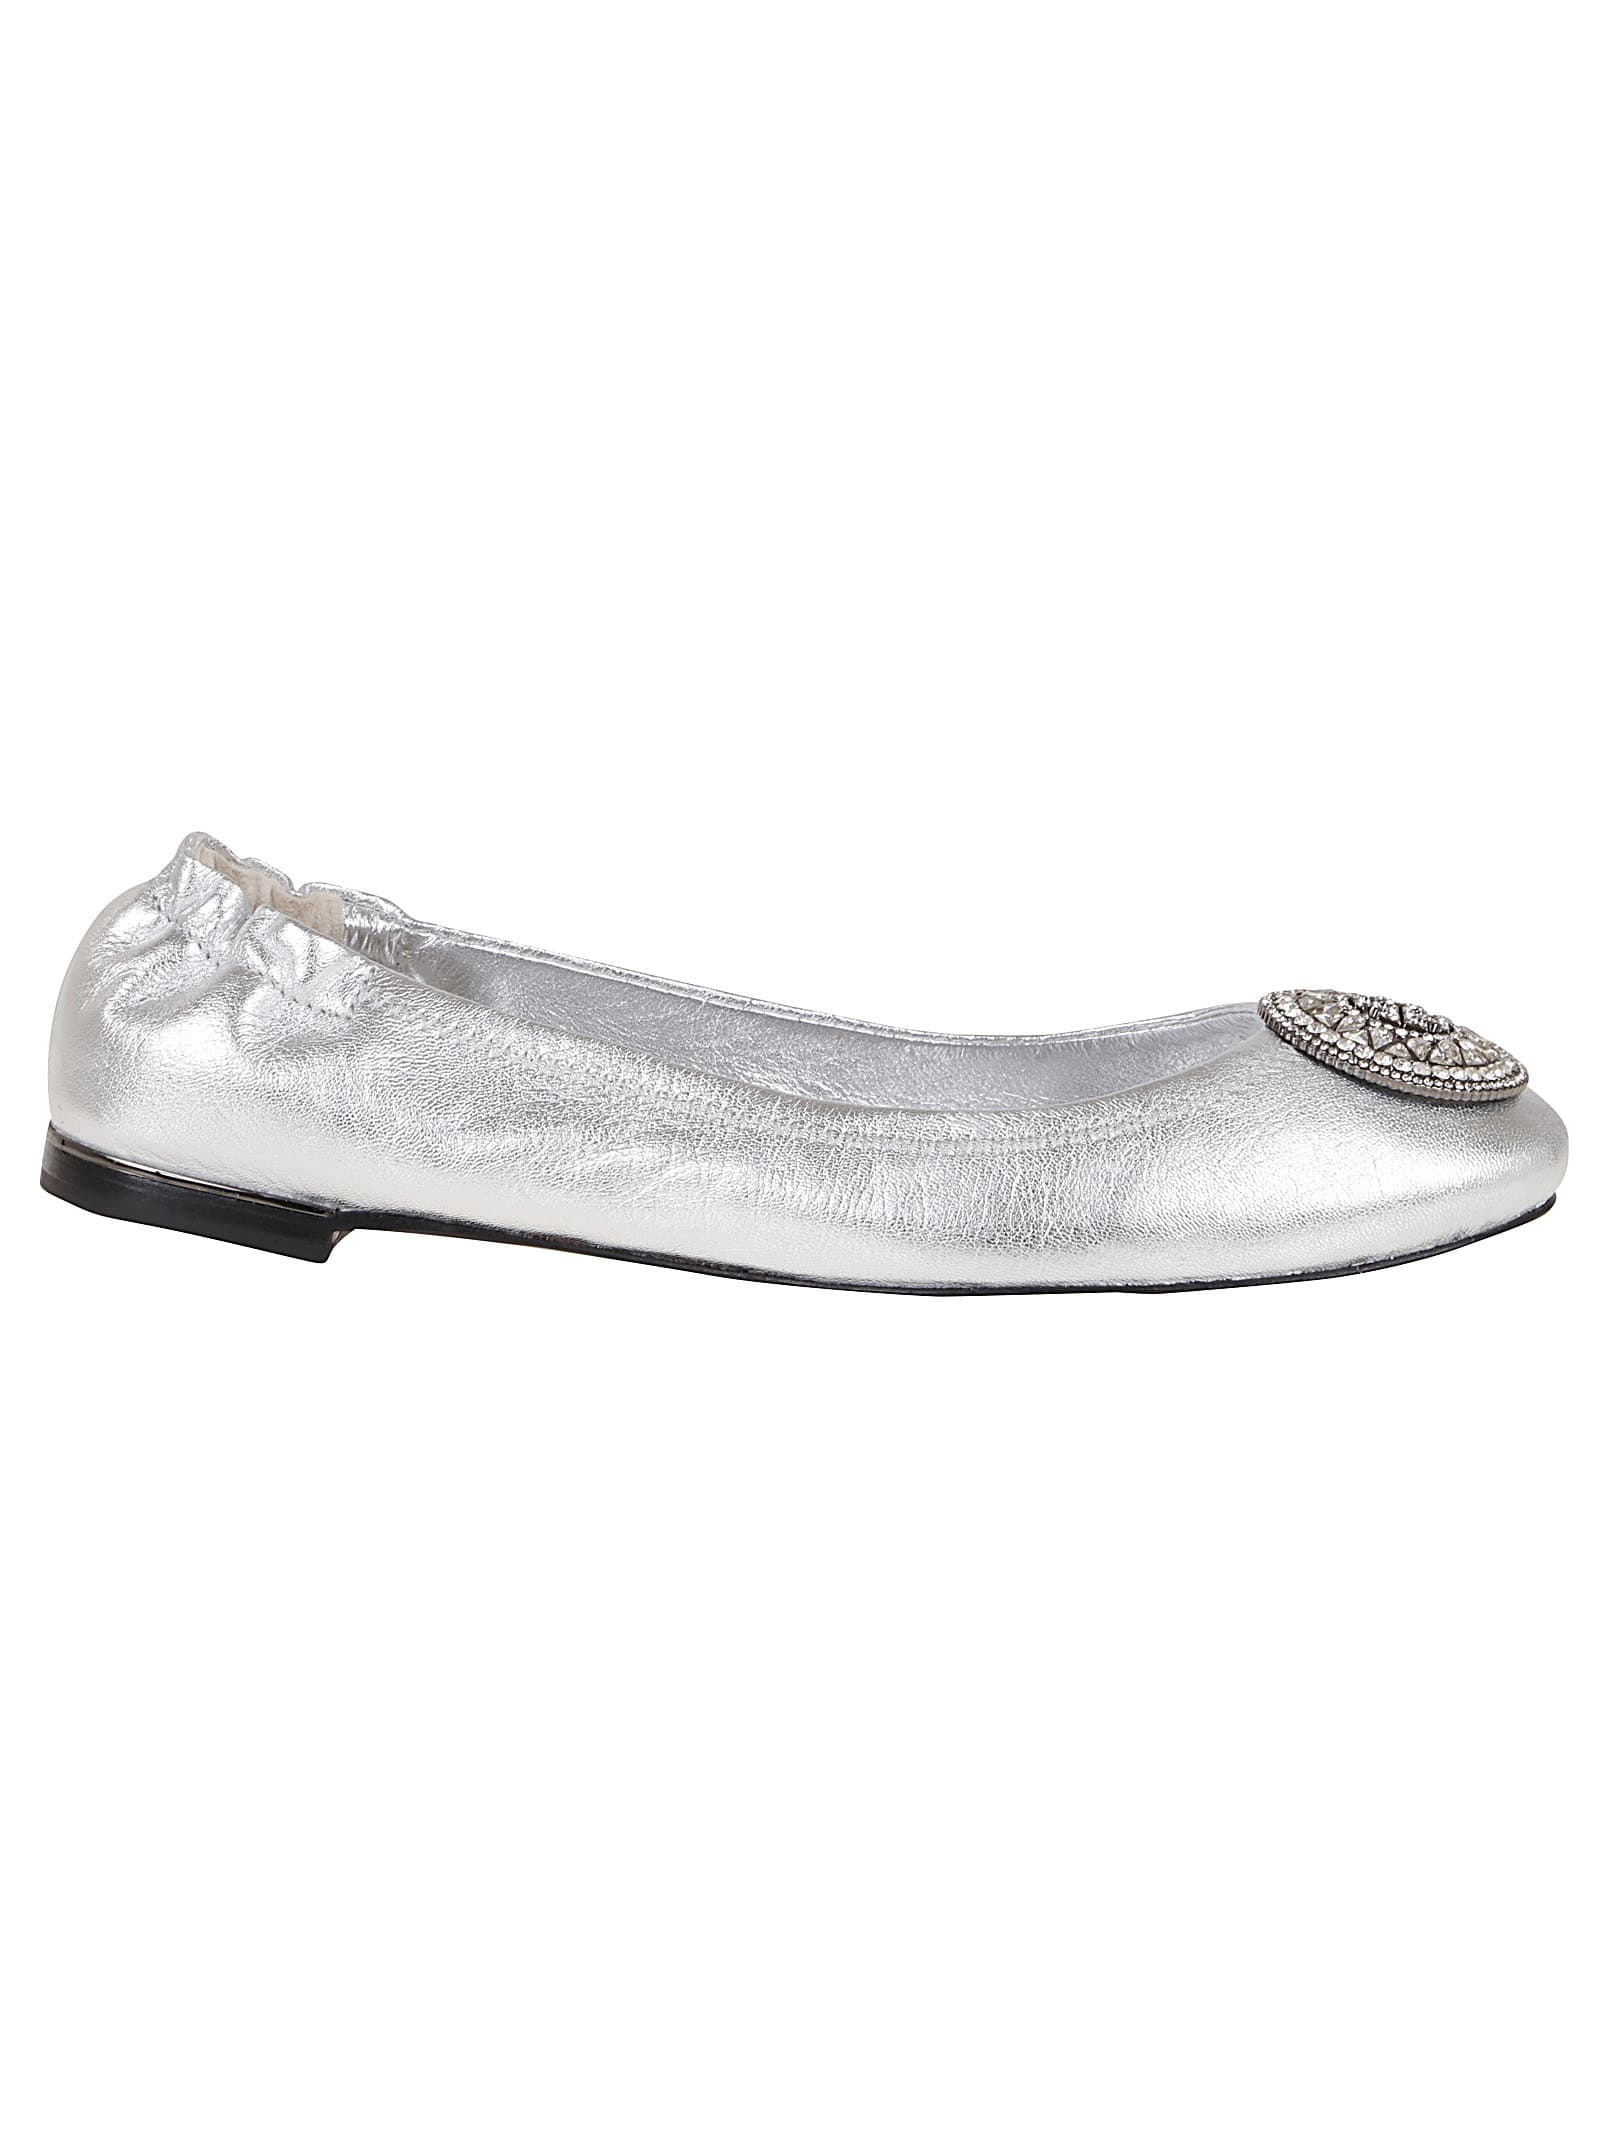 Buy Tory Burch Crystal Logo 5mm Ballet online, shop Tory Burch shoes with free shipping